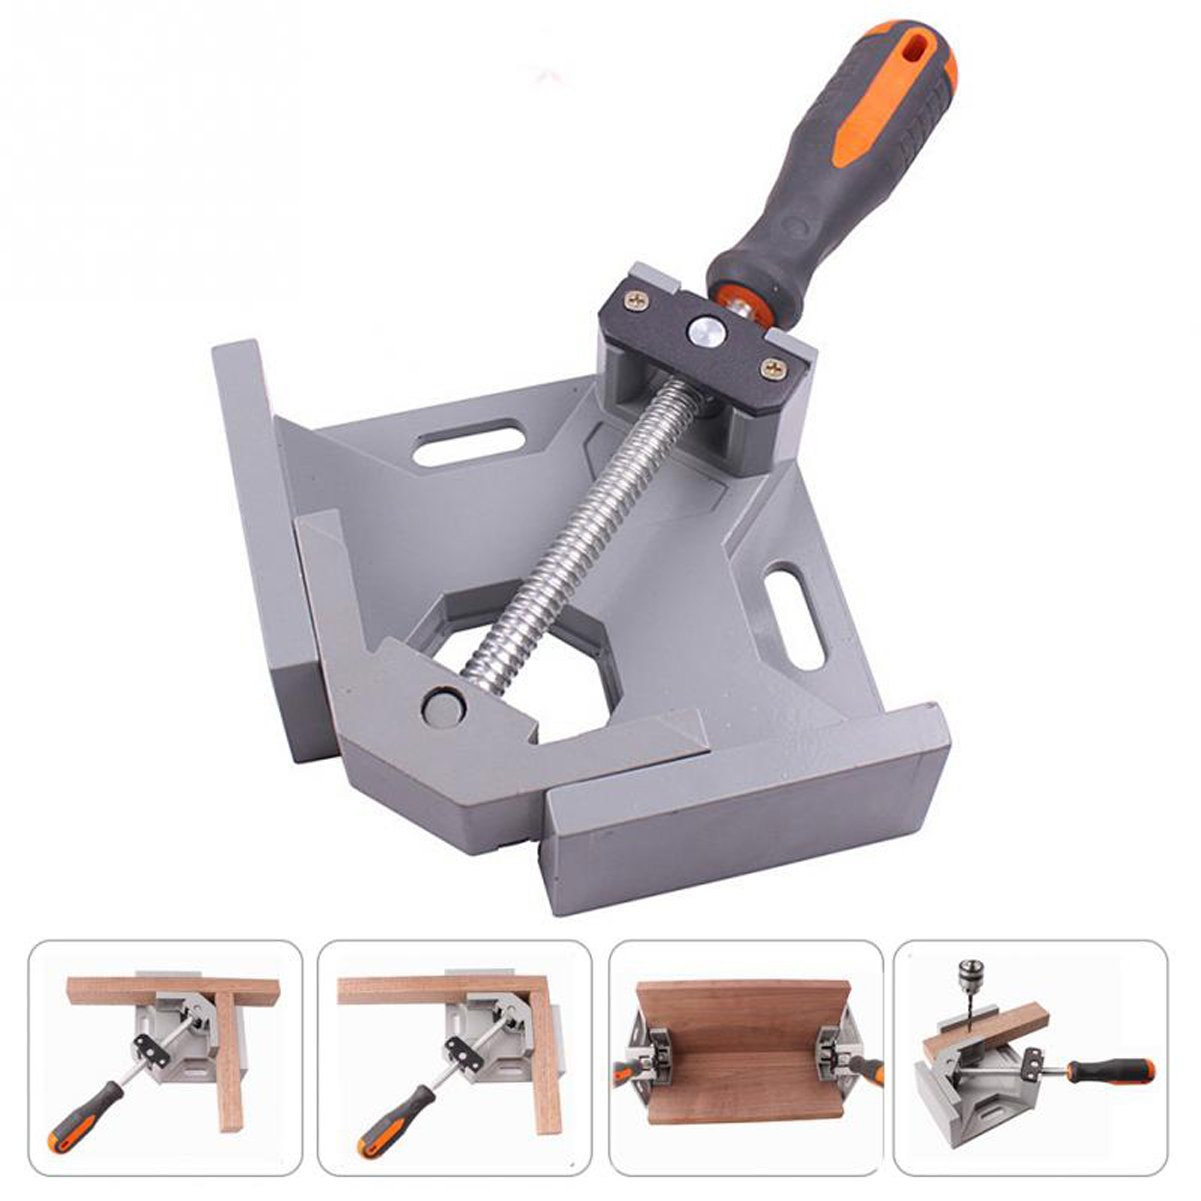 90 Degree Right Angle Clamp | Corner Clamp with Aluminum Alloy Body | Adjustable Swing Jaw Vise for Woodworking, Welding, Drilling, Doweling